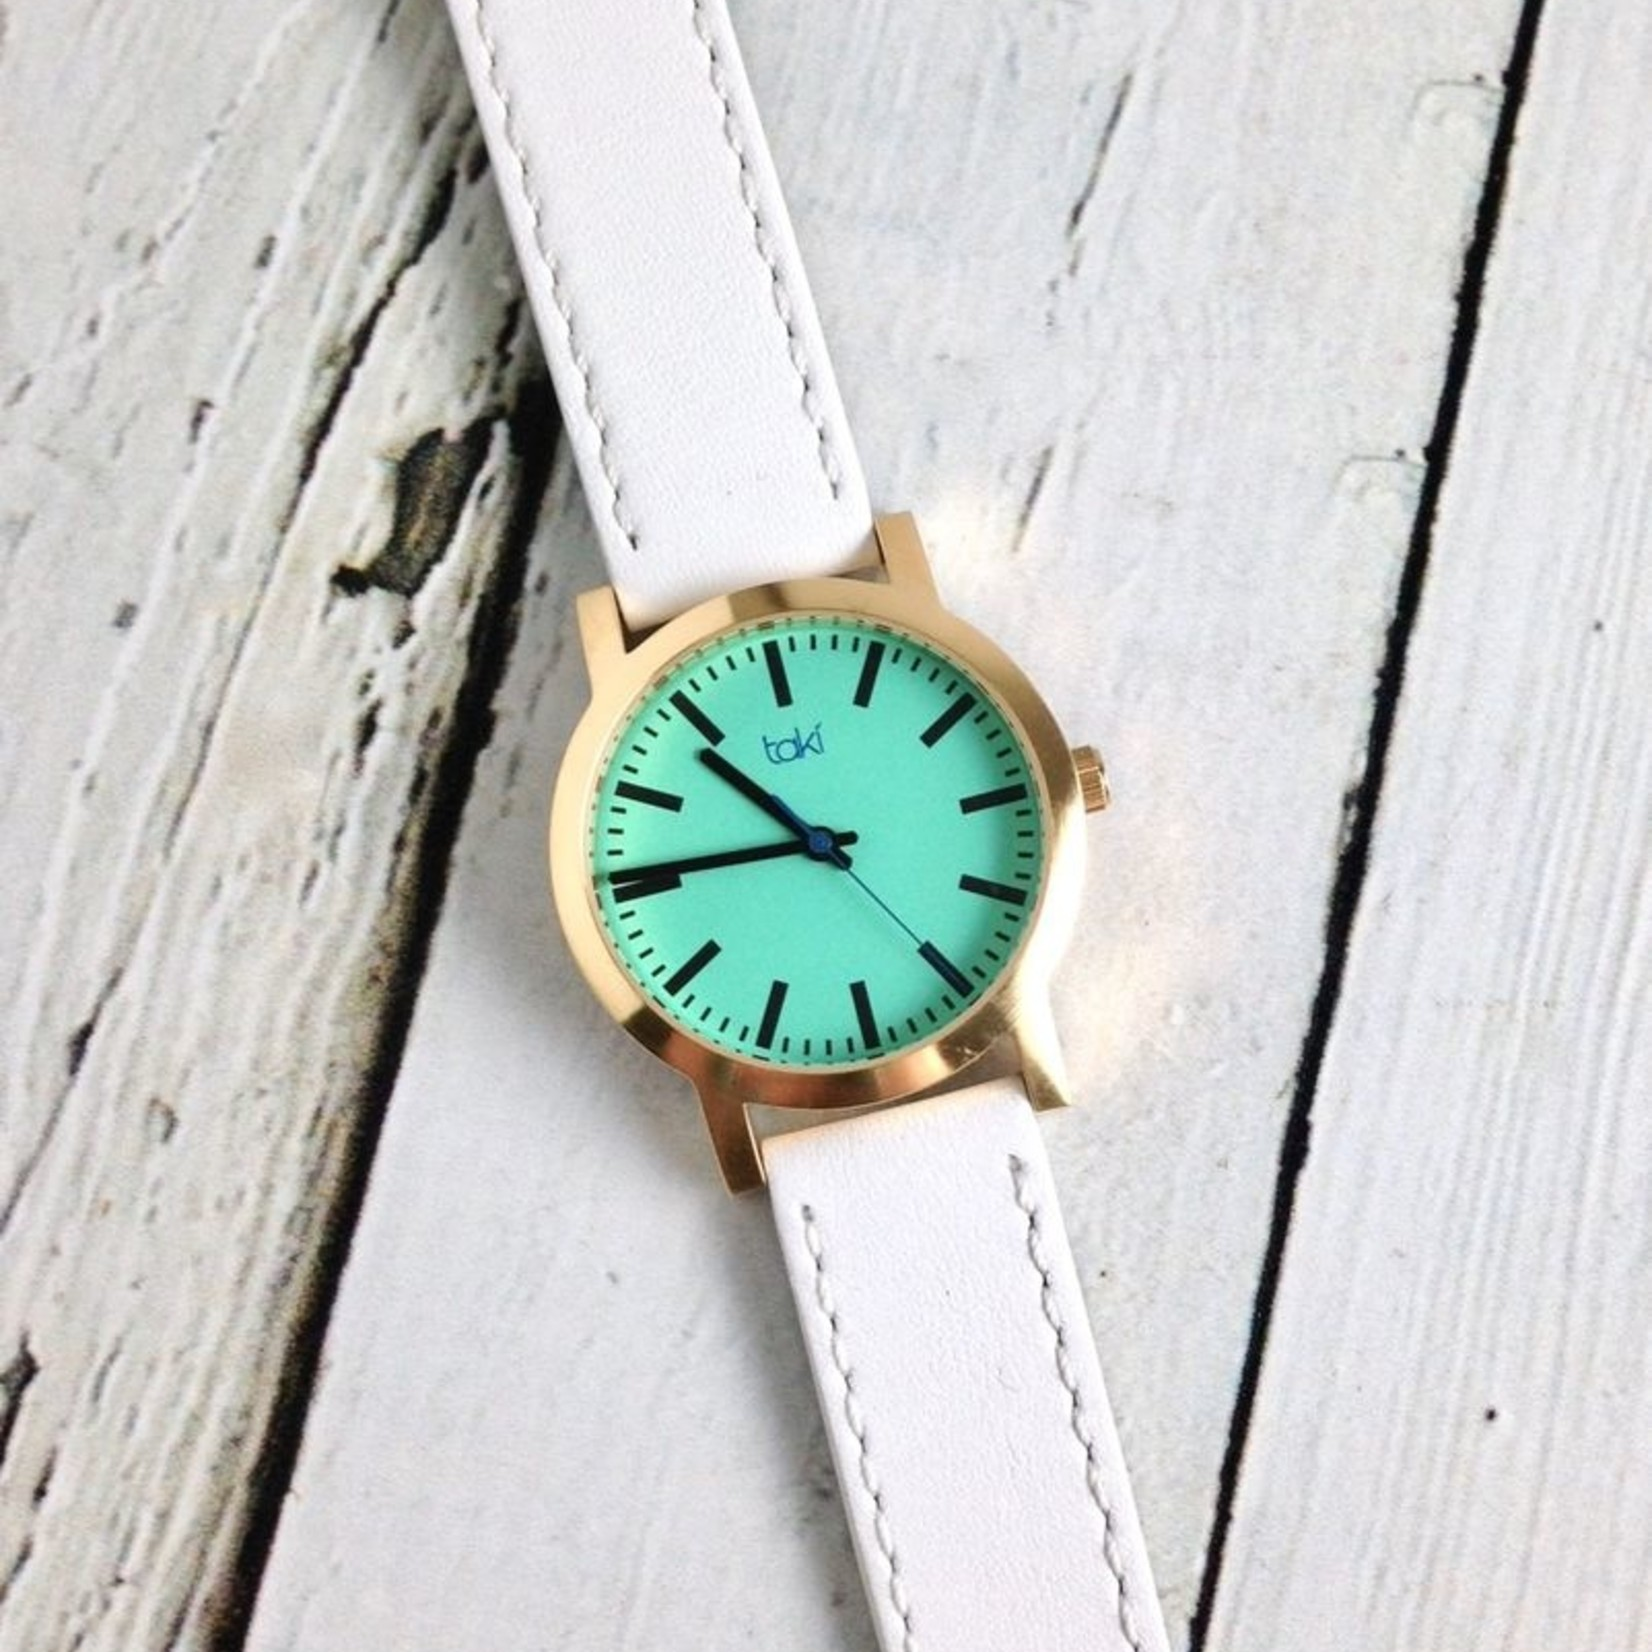 Eden Watch, Turquoise Face and White Band with a gold-tone bezel